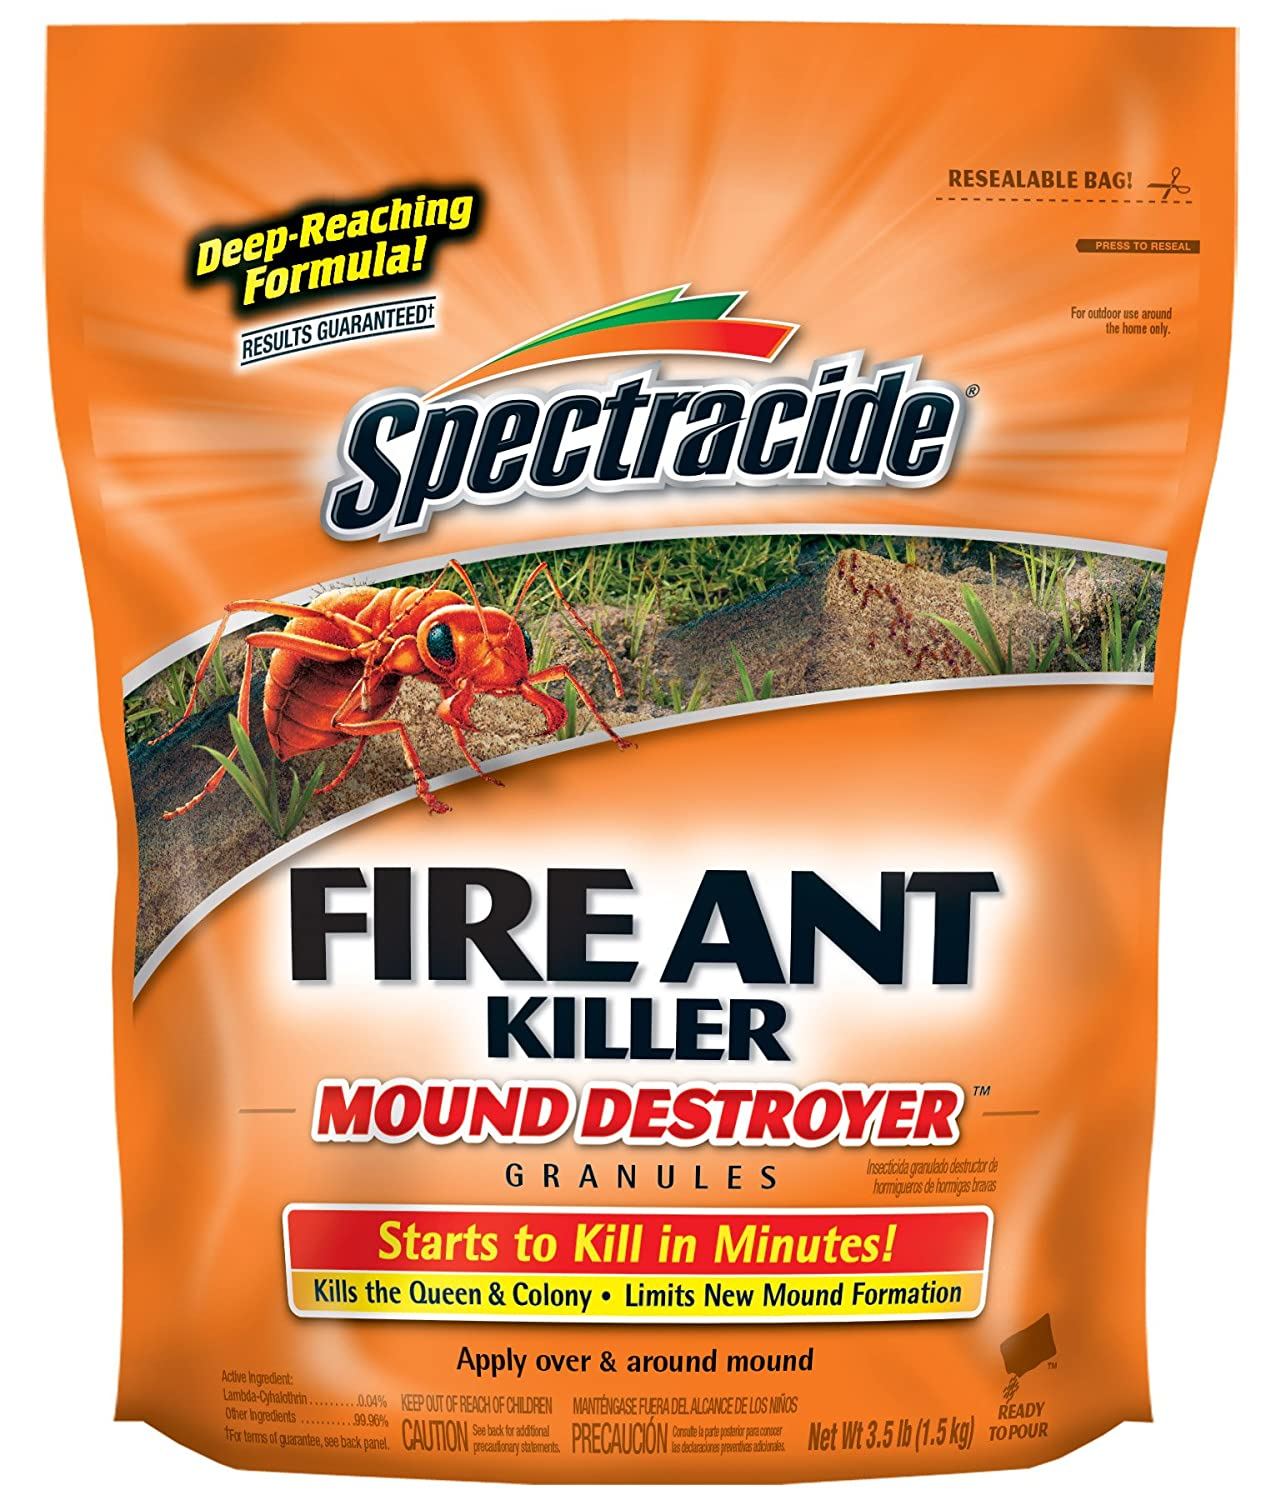 Spectracide HG-53225 Fire Ant Killer Mound Destroyer Granules, 3.5-Pound, Pack of 1 United Industries 100046125